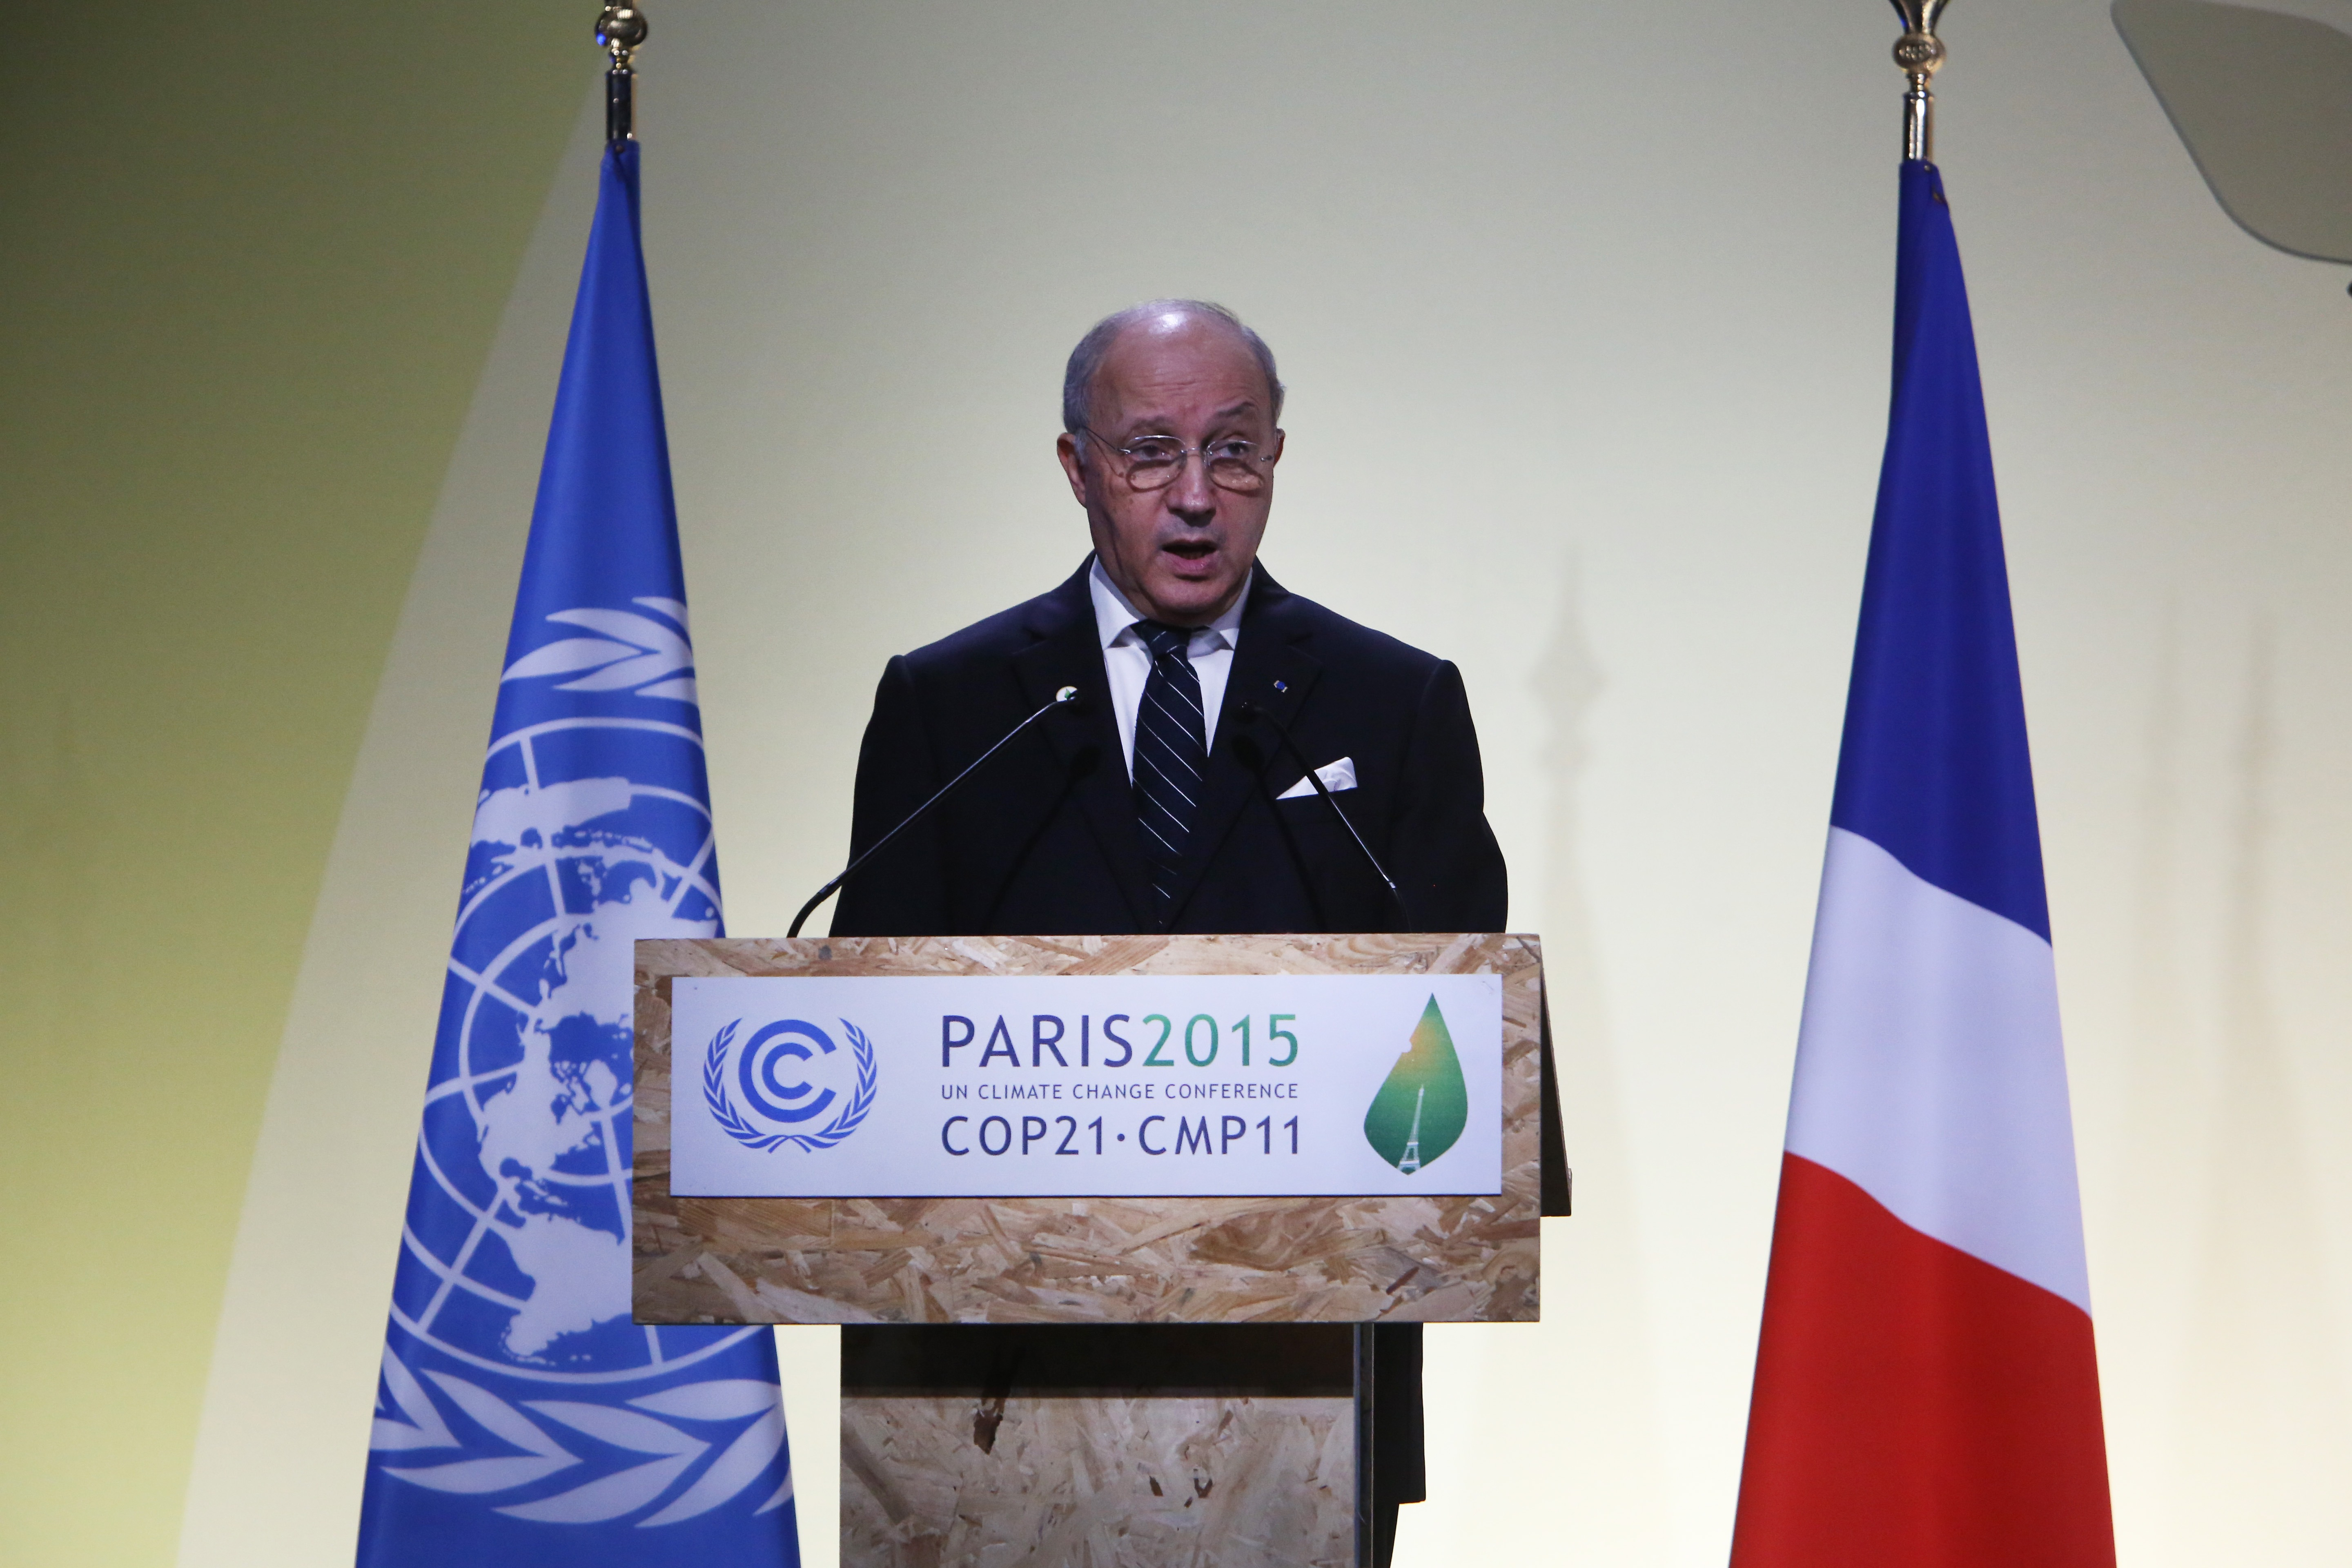 21st Session Of Conference On Climate Change COP21 Opens At Le Bourget